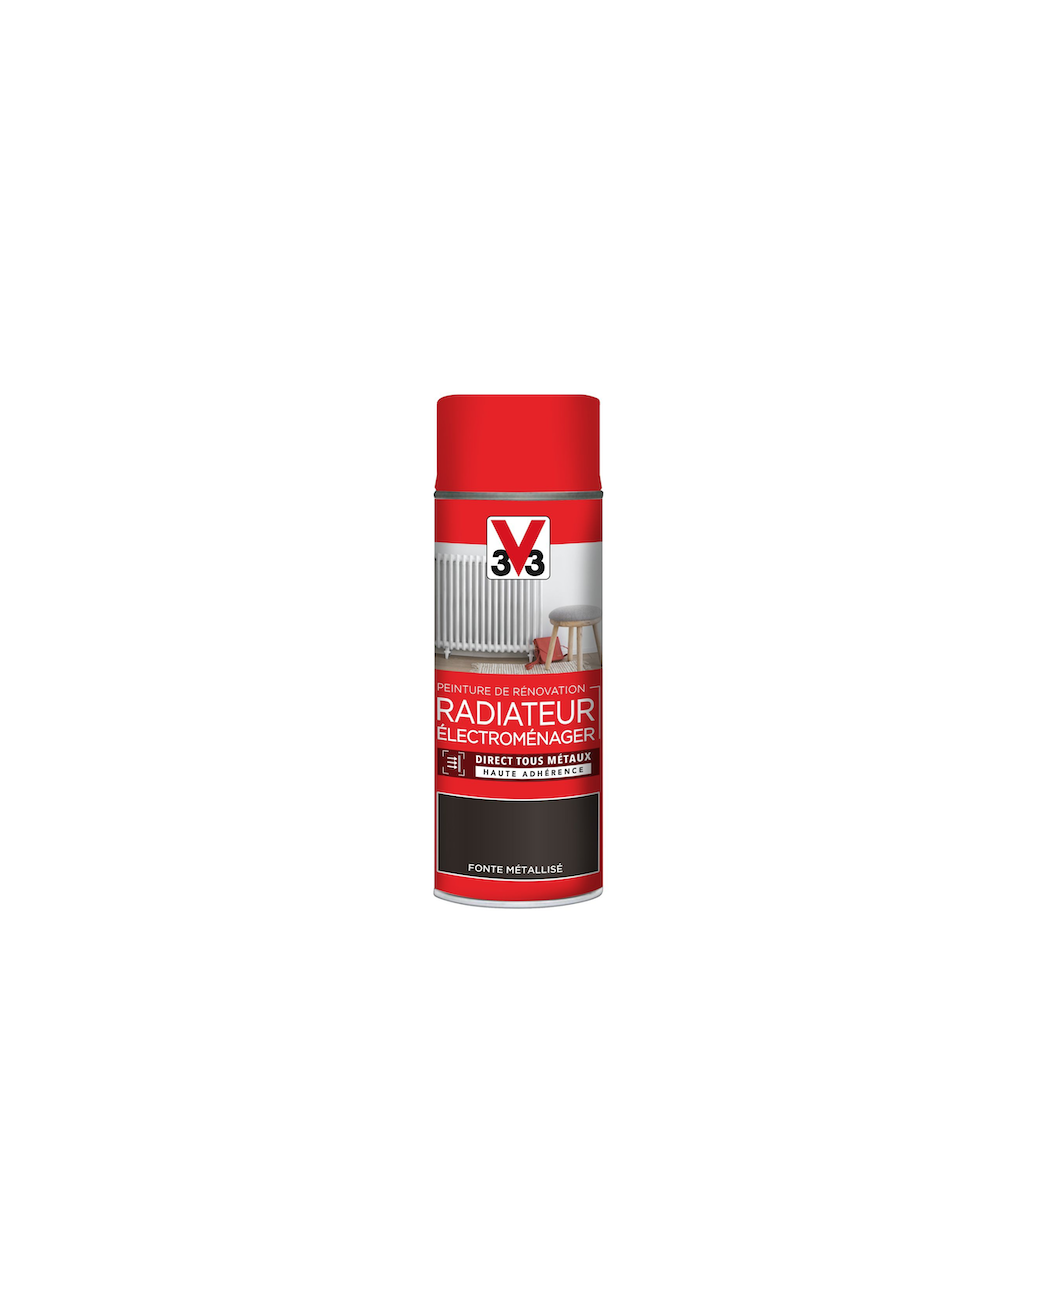 V33 AEROSOL PEINTURE RENOVATION RADIATEUR ELECTROMENAGER FONTE METALLISE SPRAY CAN BOMBE BRICOLAGE DECORATION MAISON 3153895119375 COMASOUND KARTEL CSK ONLINE